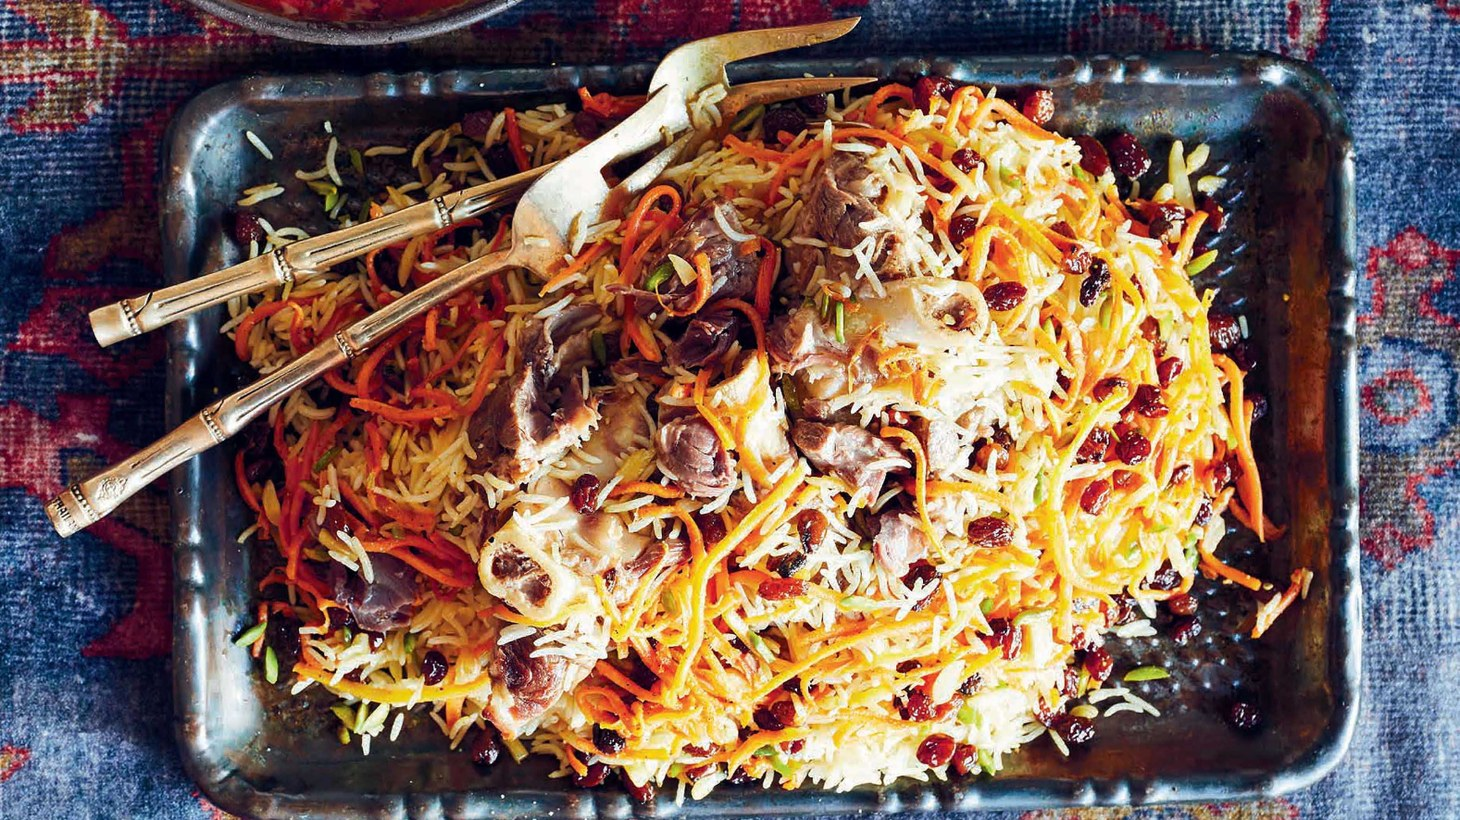 Rice is the centerpiece to Afghan cuisine around which meat, curries, salad, and dumplings are served.